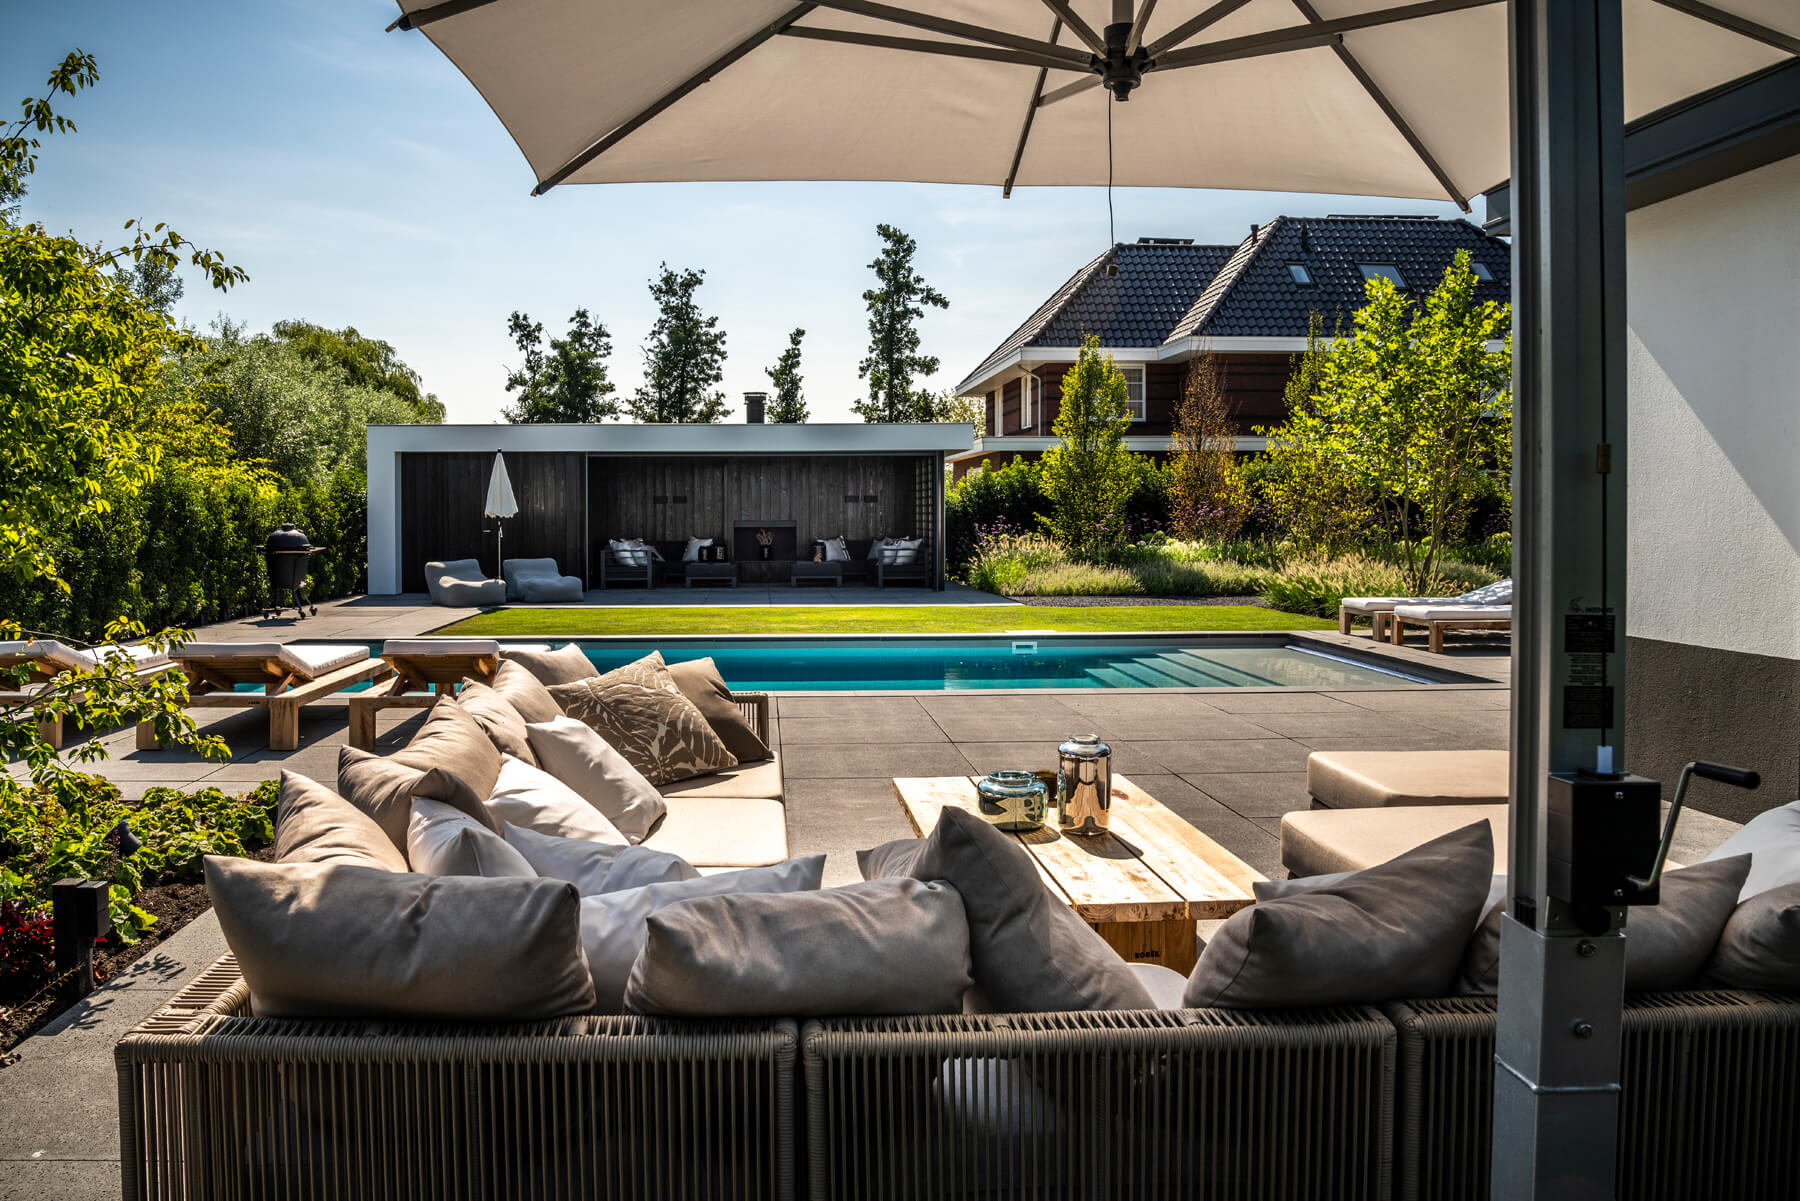 luxe-lounge-tuin-31